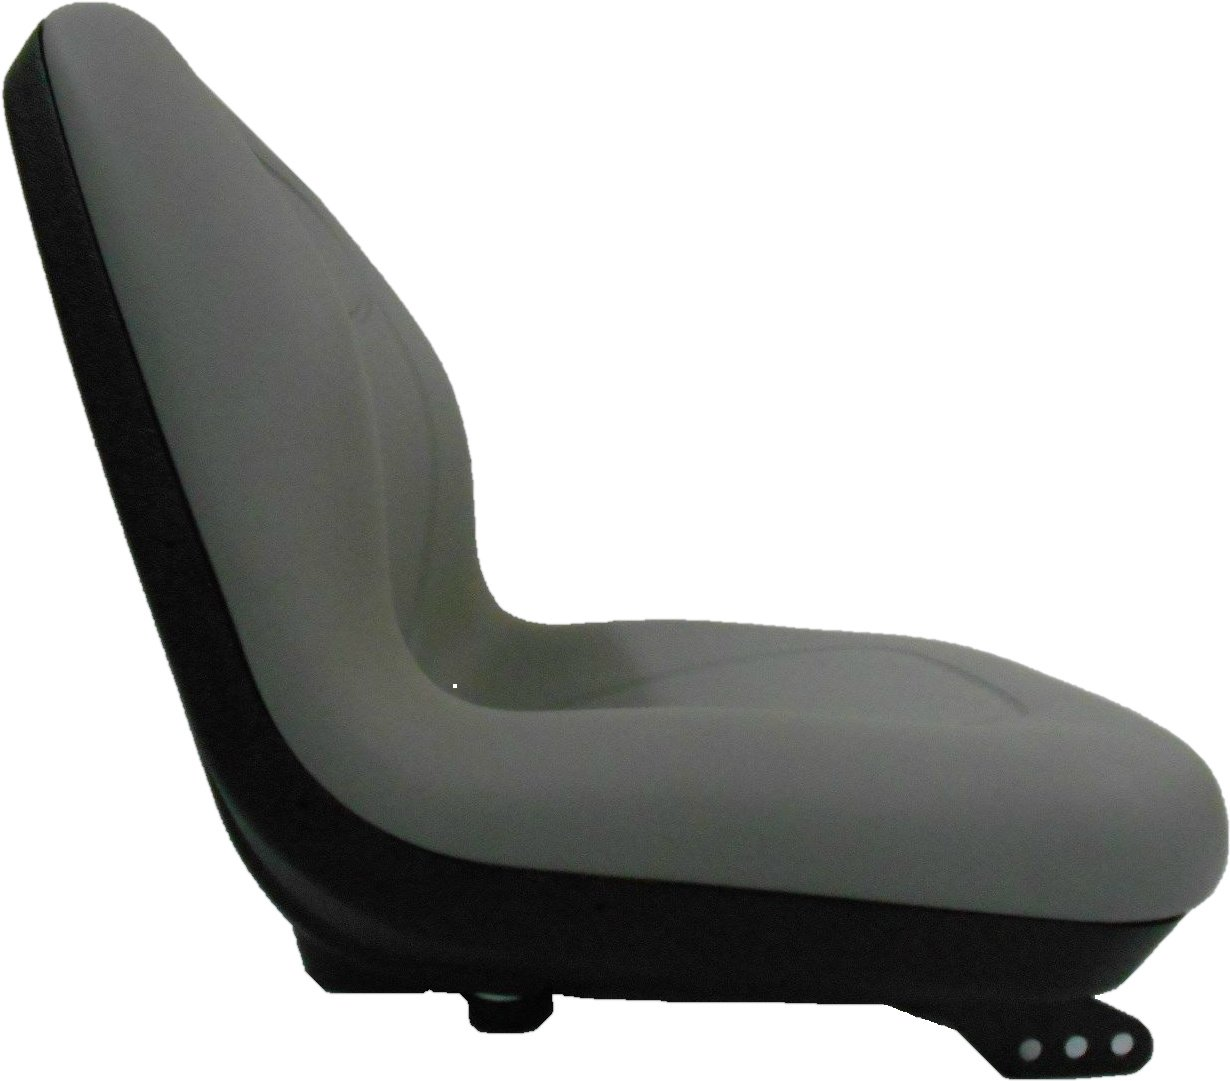 Mf Tractor Seat : New gray seat for massey ferguson gc sub compact